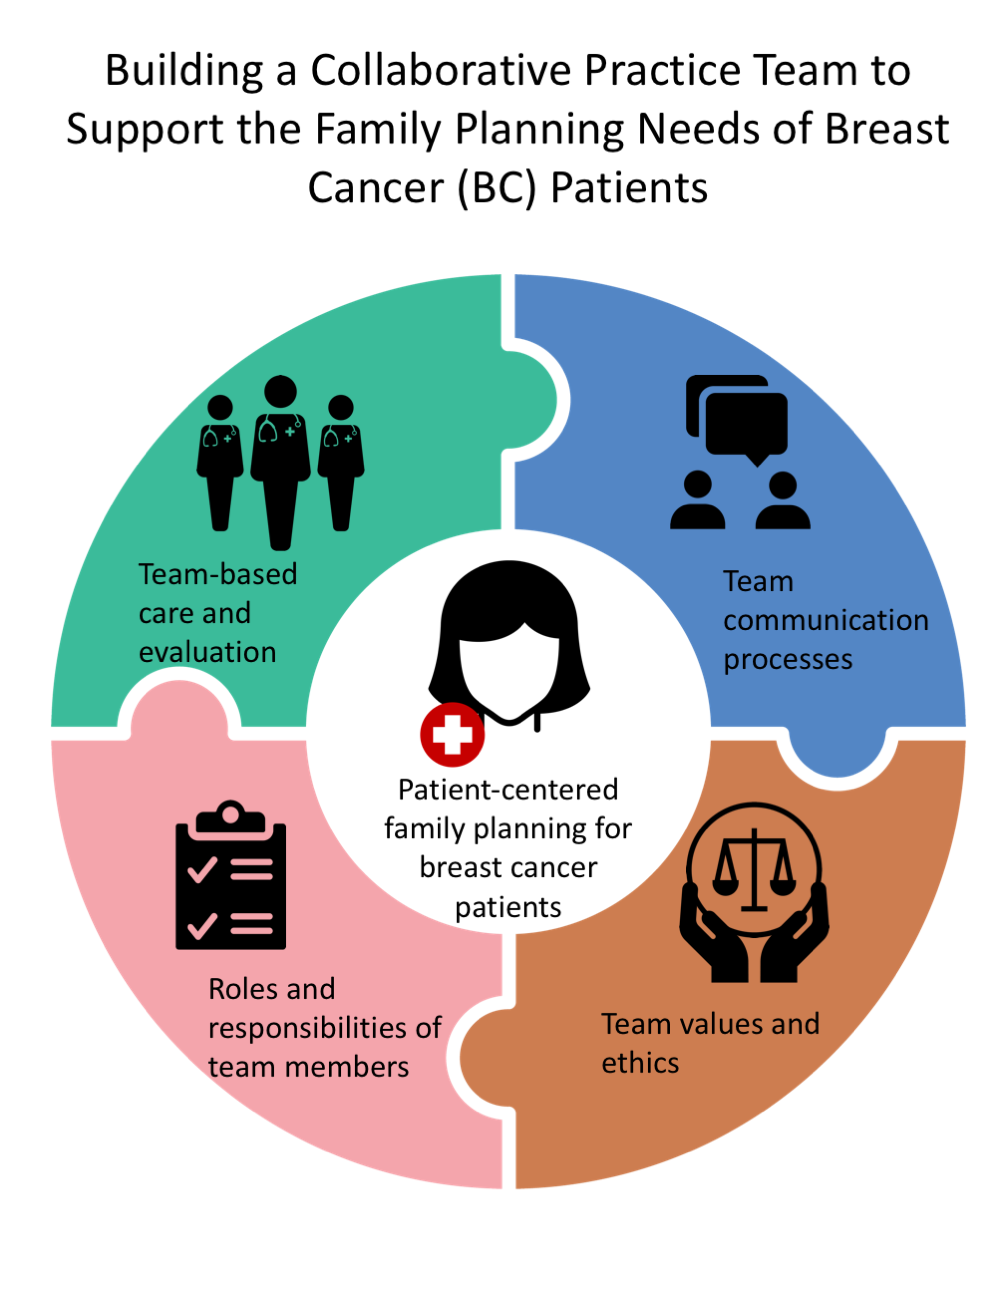 Building a Collaborative Practice Team to Support the Family Planning Needs of Breast Cancer (BC) Patients